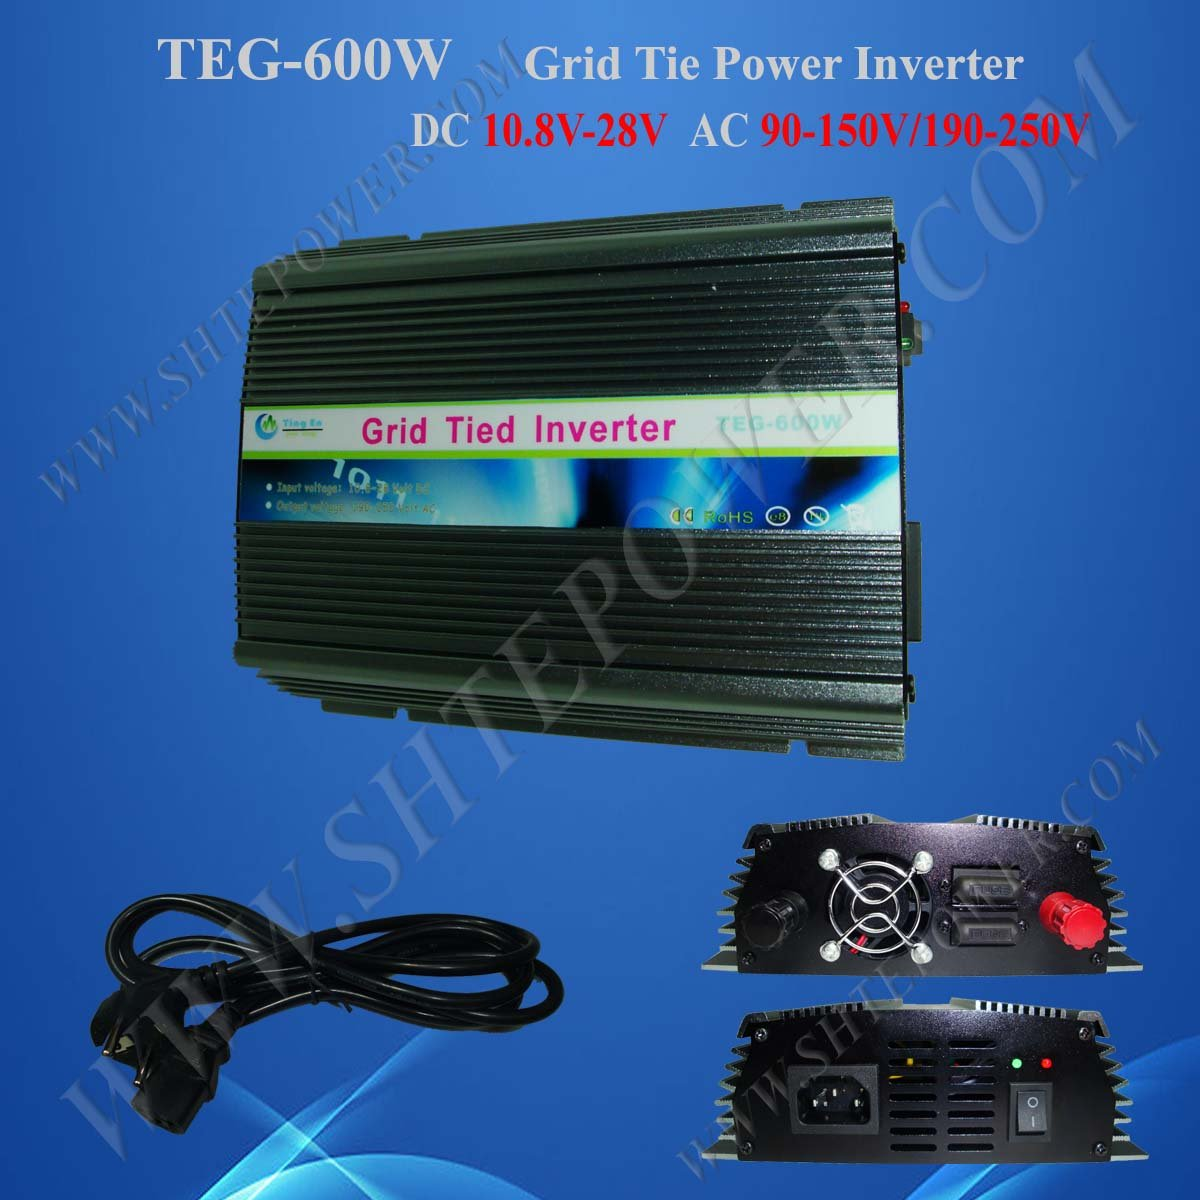 grid tie micro inverter 600w home solar inverter dc 10.8-28v to ac 110v/120v/230v/240v power inverter 260w dc 22 50v to ac 110v 120v 220v 230v waterproof power inverter pv solar grid tie inverter